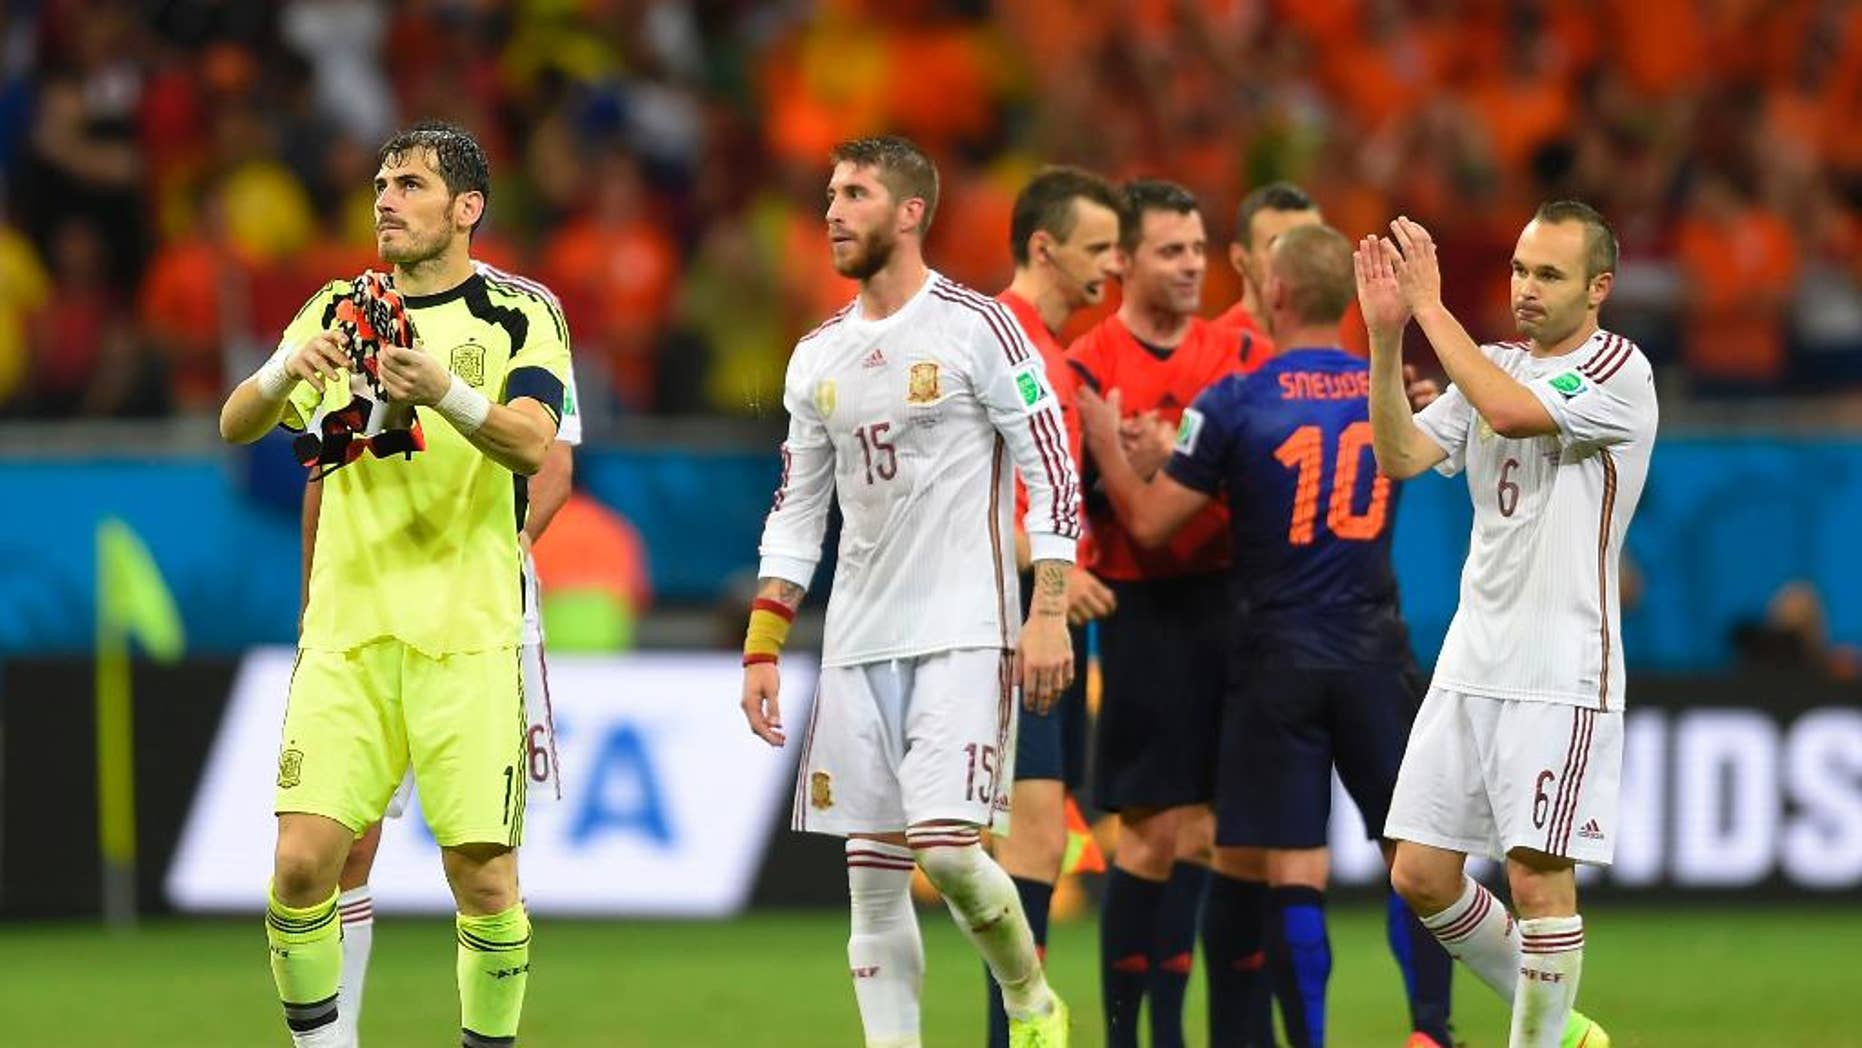 Spain's goalkeeper Iker Casillas, left, Spain's Sergio Ramos, centre and Spain's Andres Iniesta react after the group B World Cup soccer match between Spain and the Netherlands at the Arena Ponte Nova in Salvador, Brazil, Friday, June 13, 2014.  The Netherlands won the match 5-1. (AP Photo/Manu Fernandez)